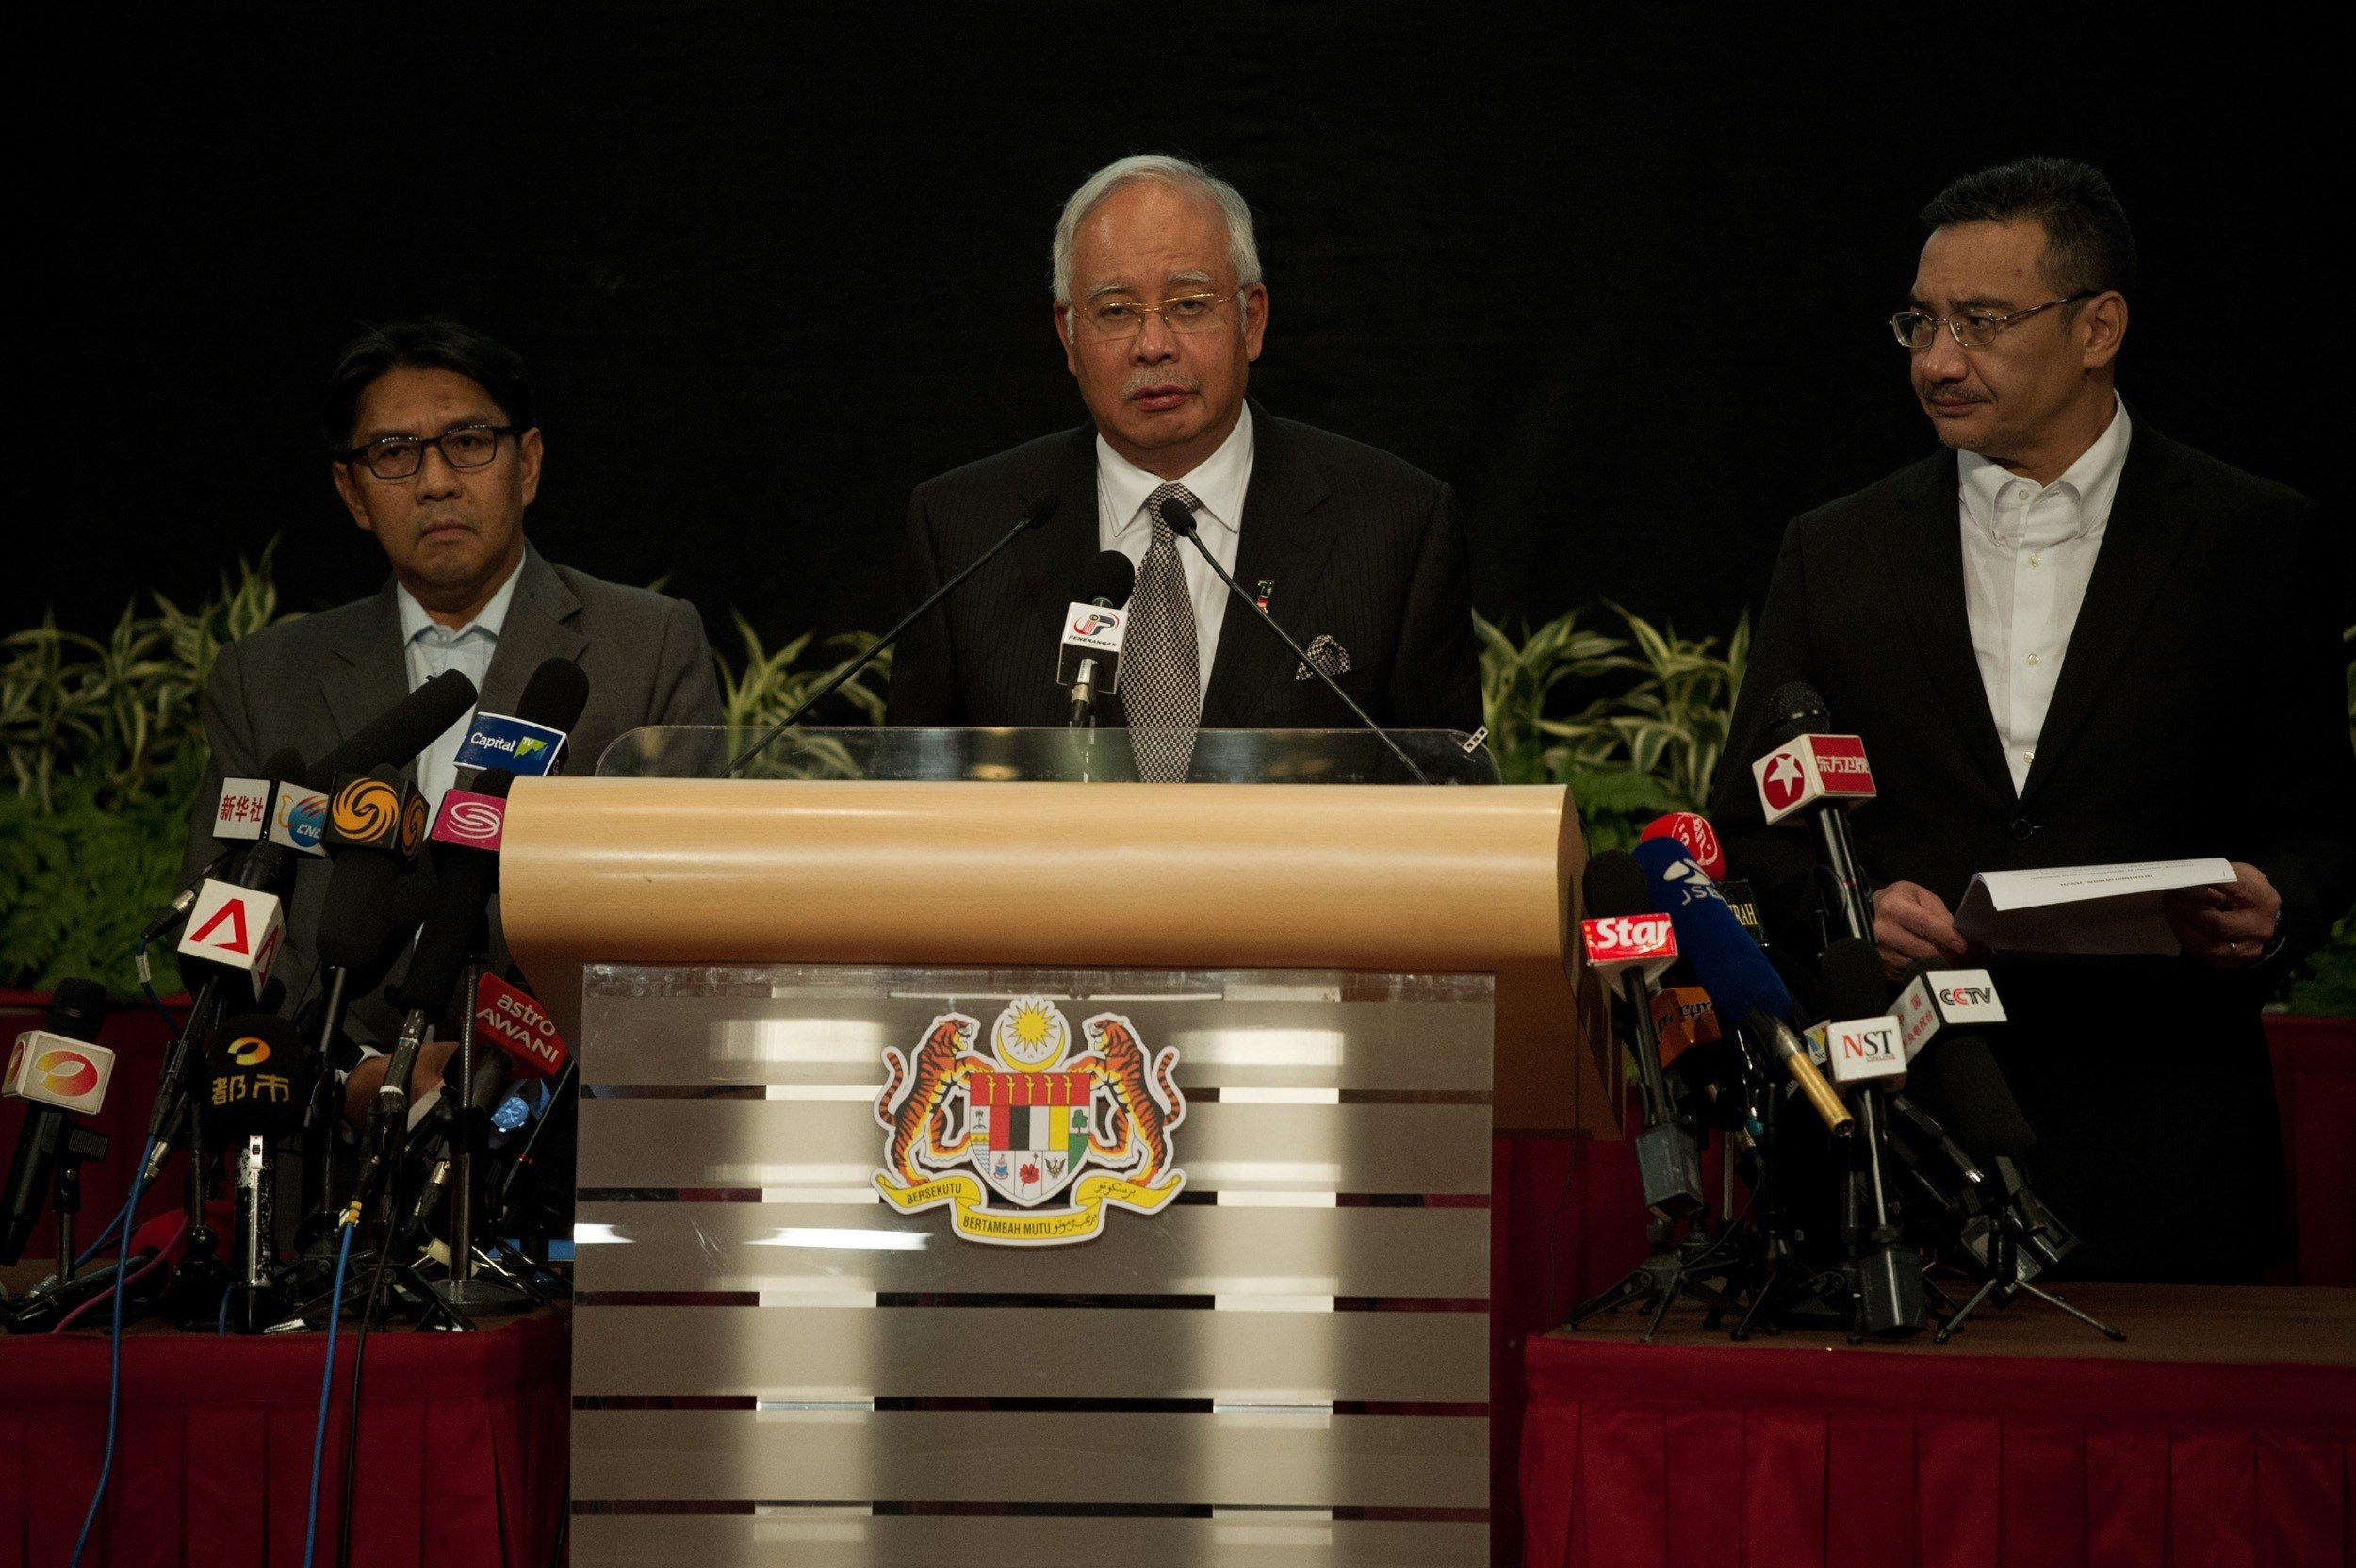 Malaysian Prime Minister Najib Razak, center, delivers a statement on the missing Malaysia Airlines Flight MH370 during a press conference in Kuala Lumpur on March 24, 2014